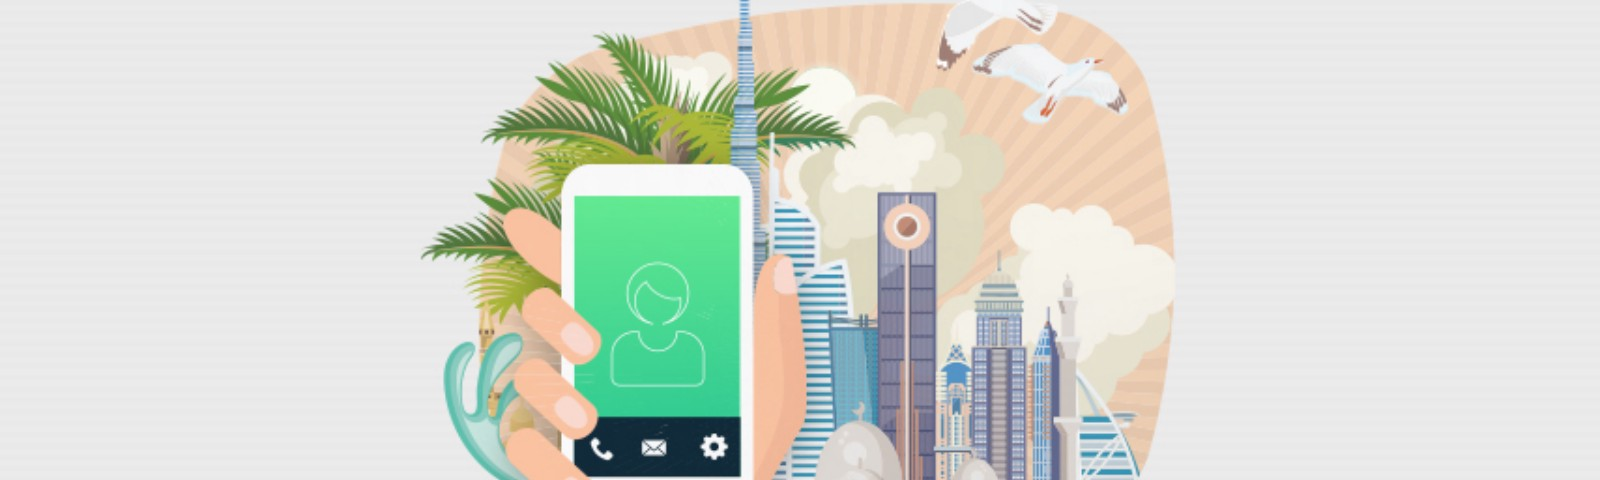 How to Make International Calls with a Free App in UAE